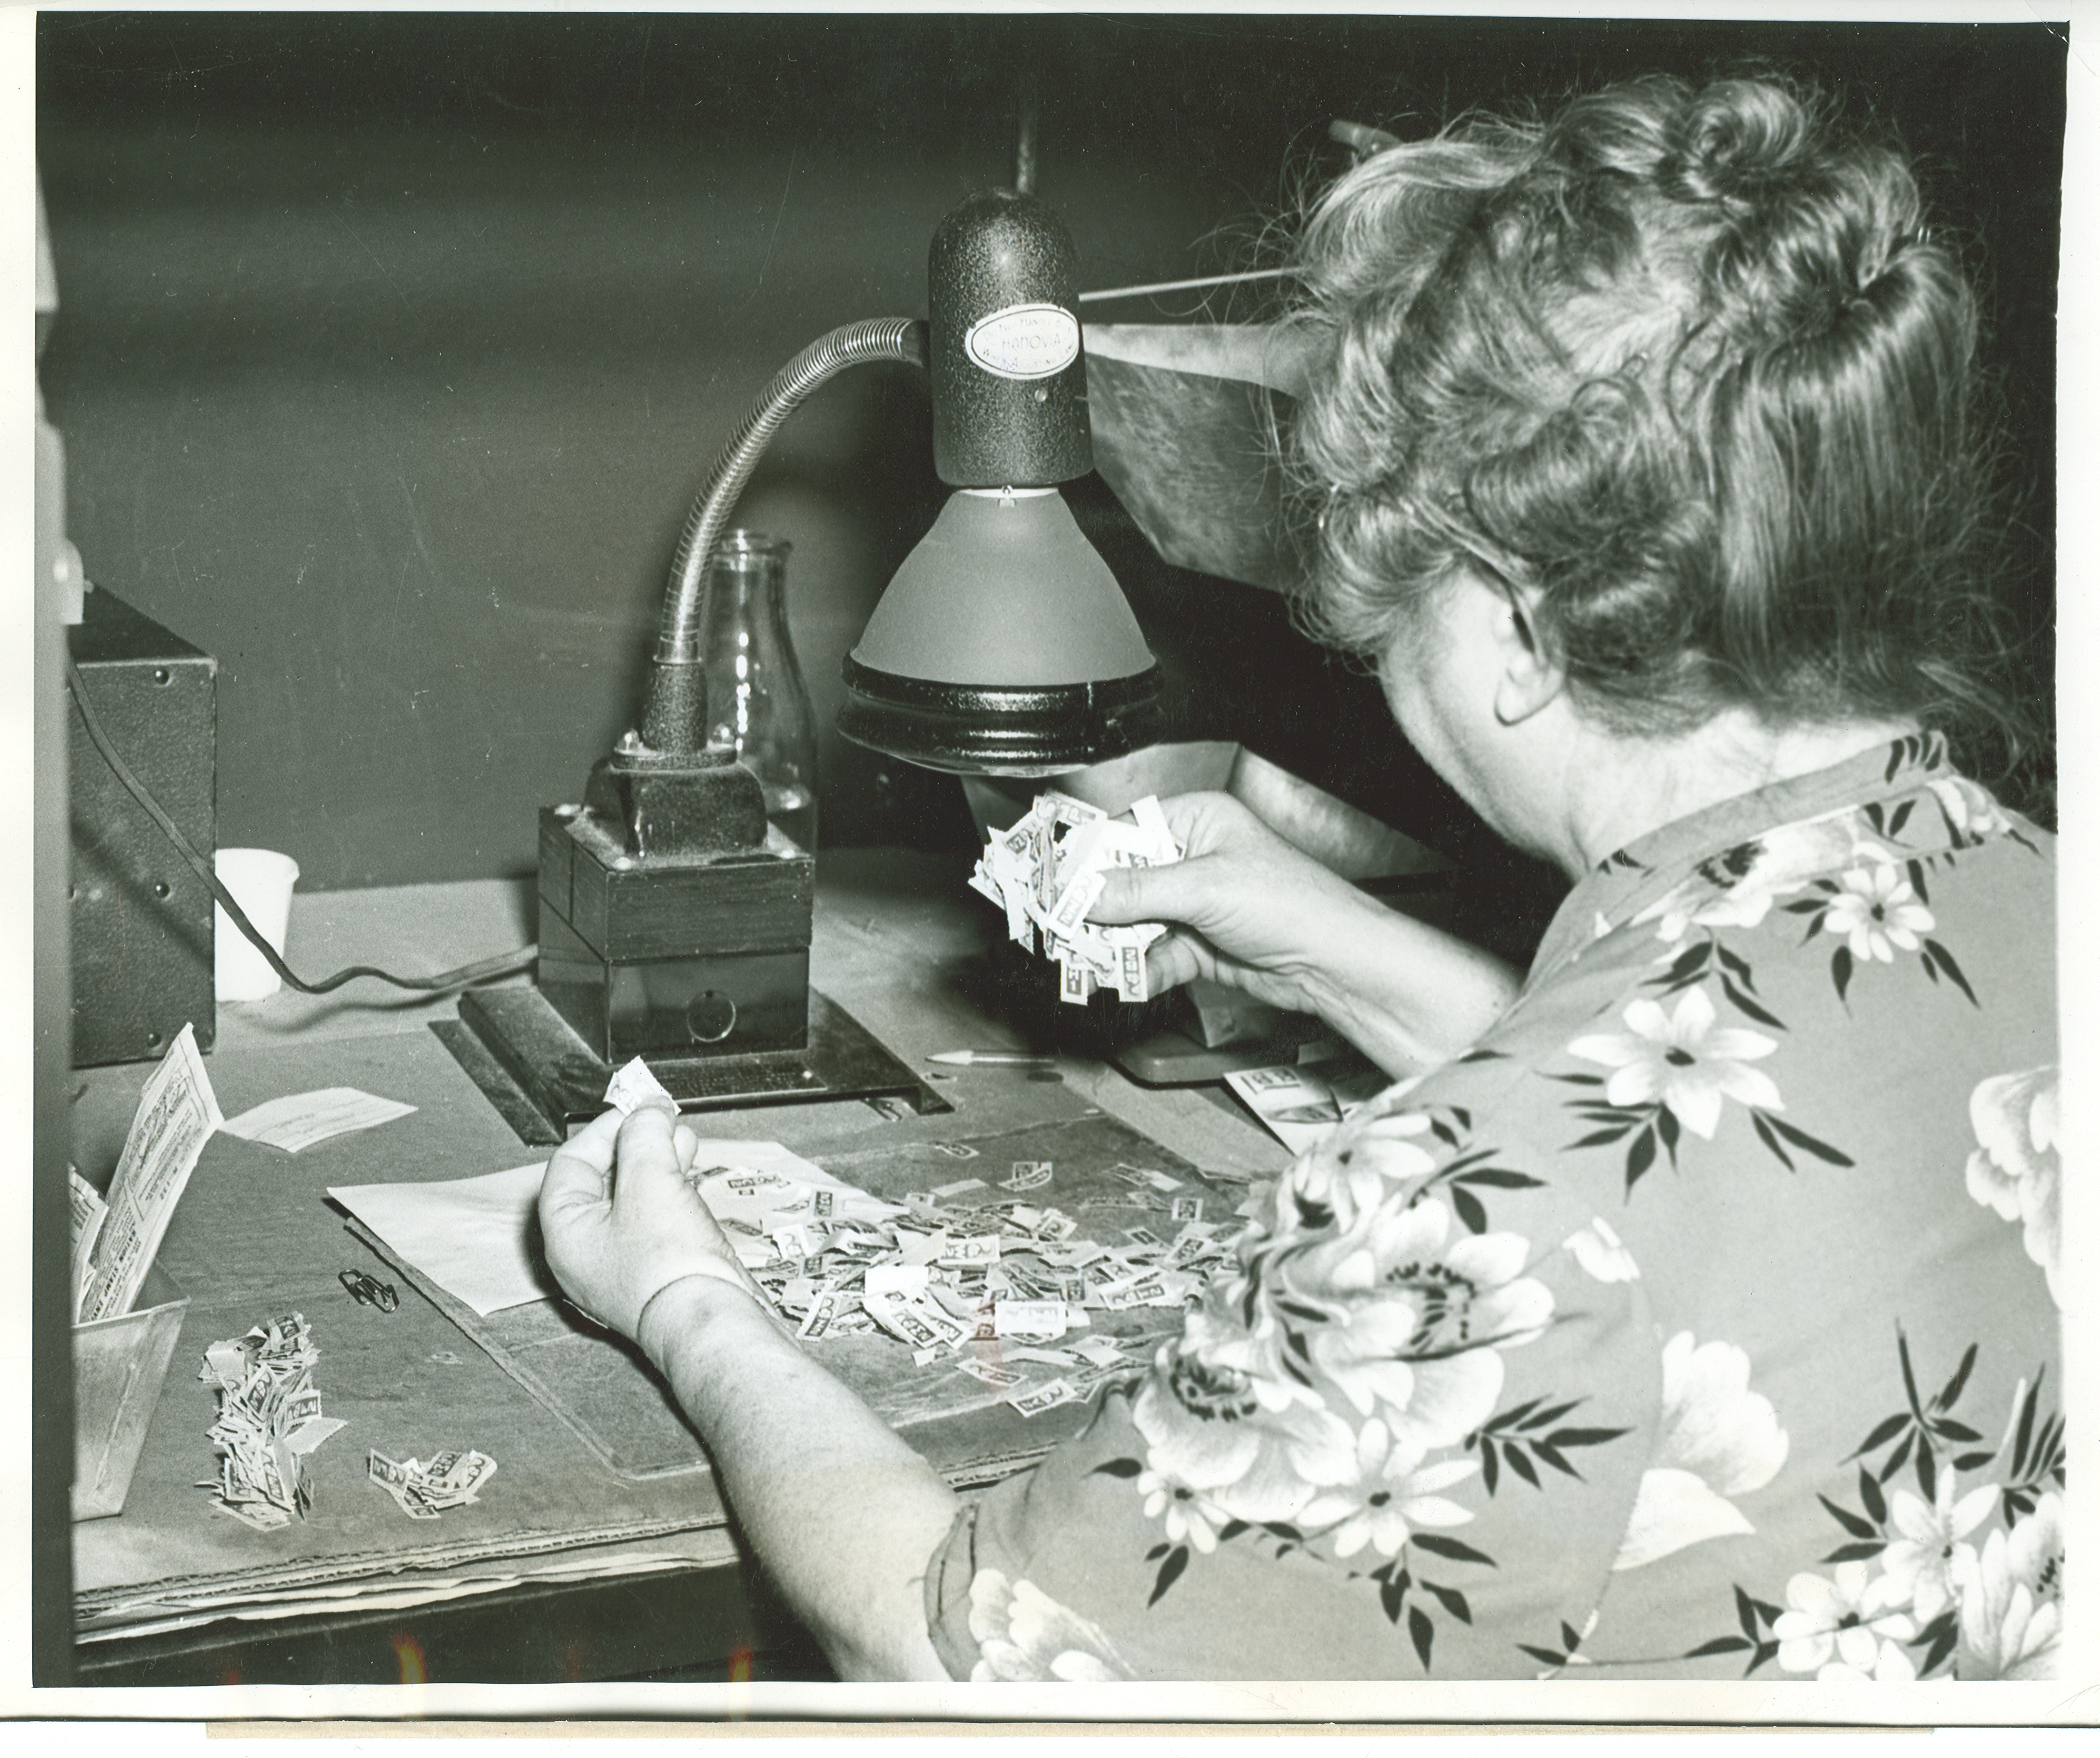 Chicago OPA worker checking the authenticity of ration stamps under ultraviolet light